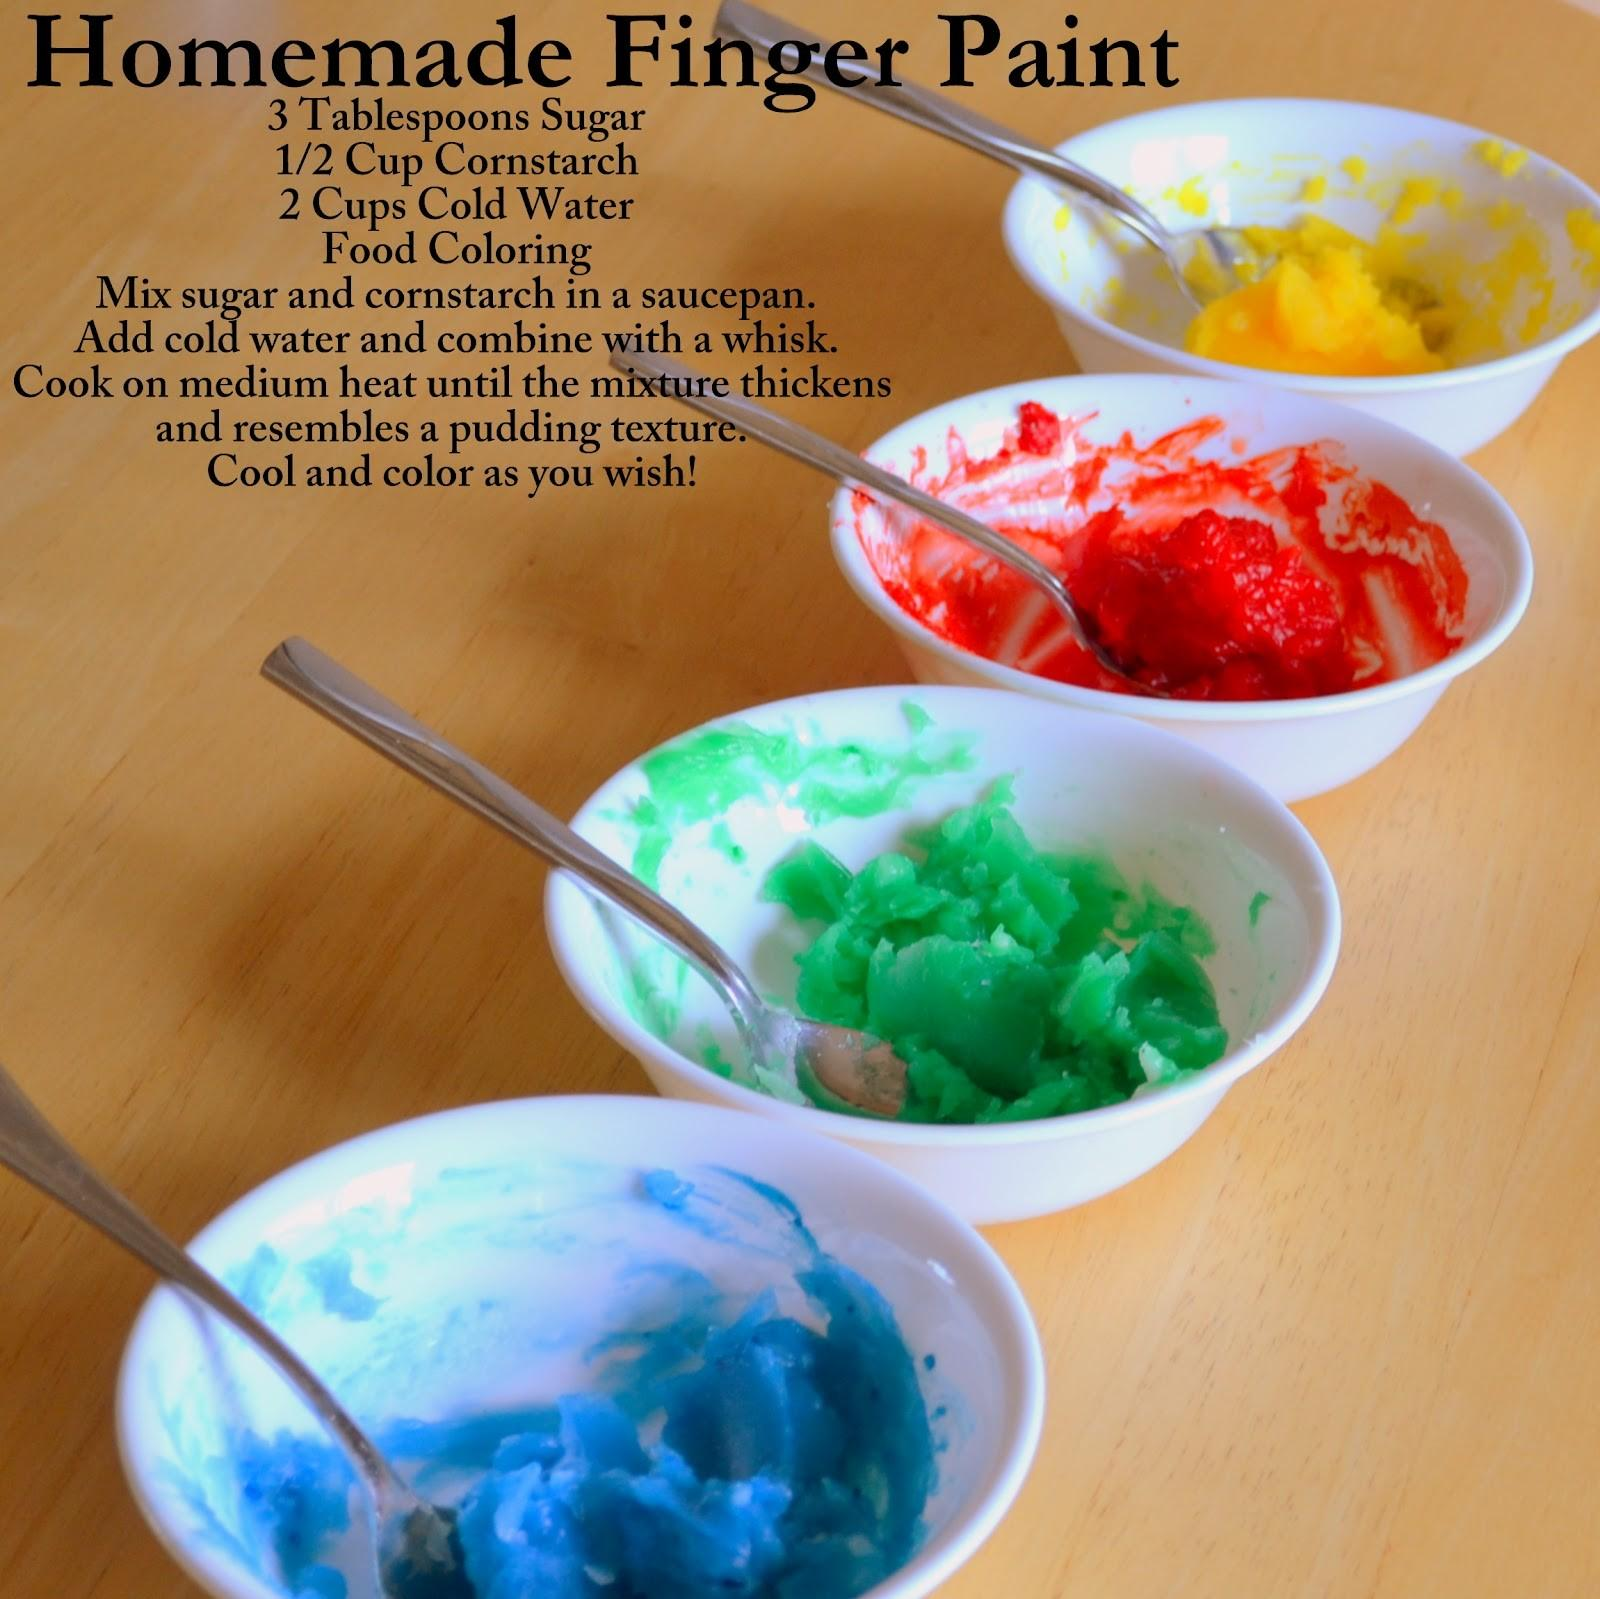 Angela Strand Homemade Finger Paint